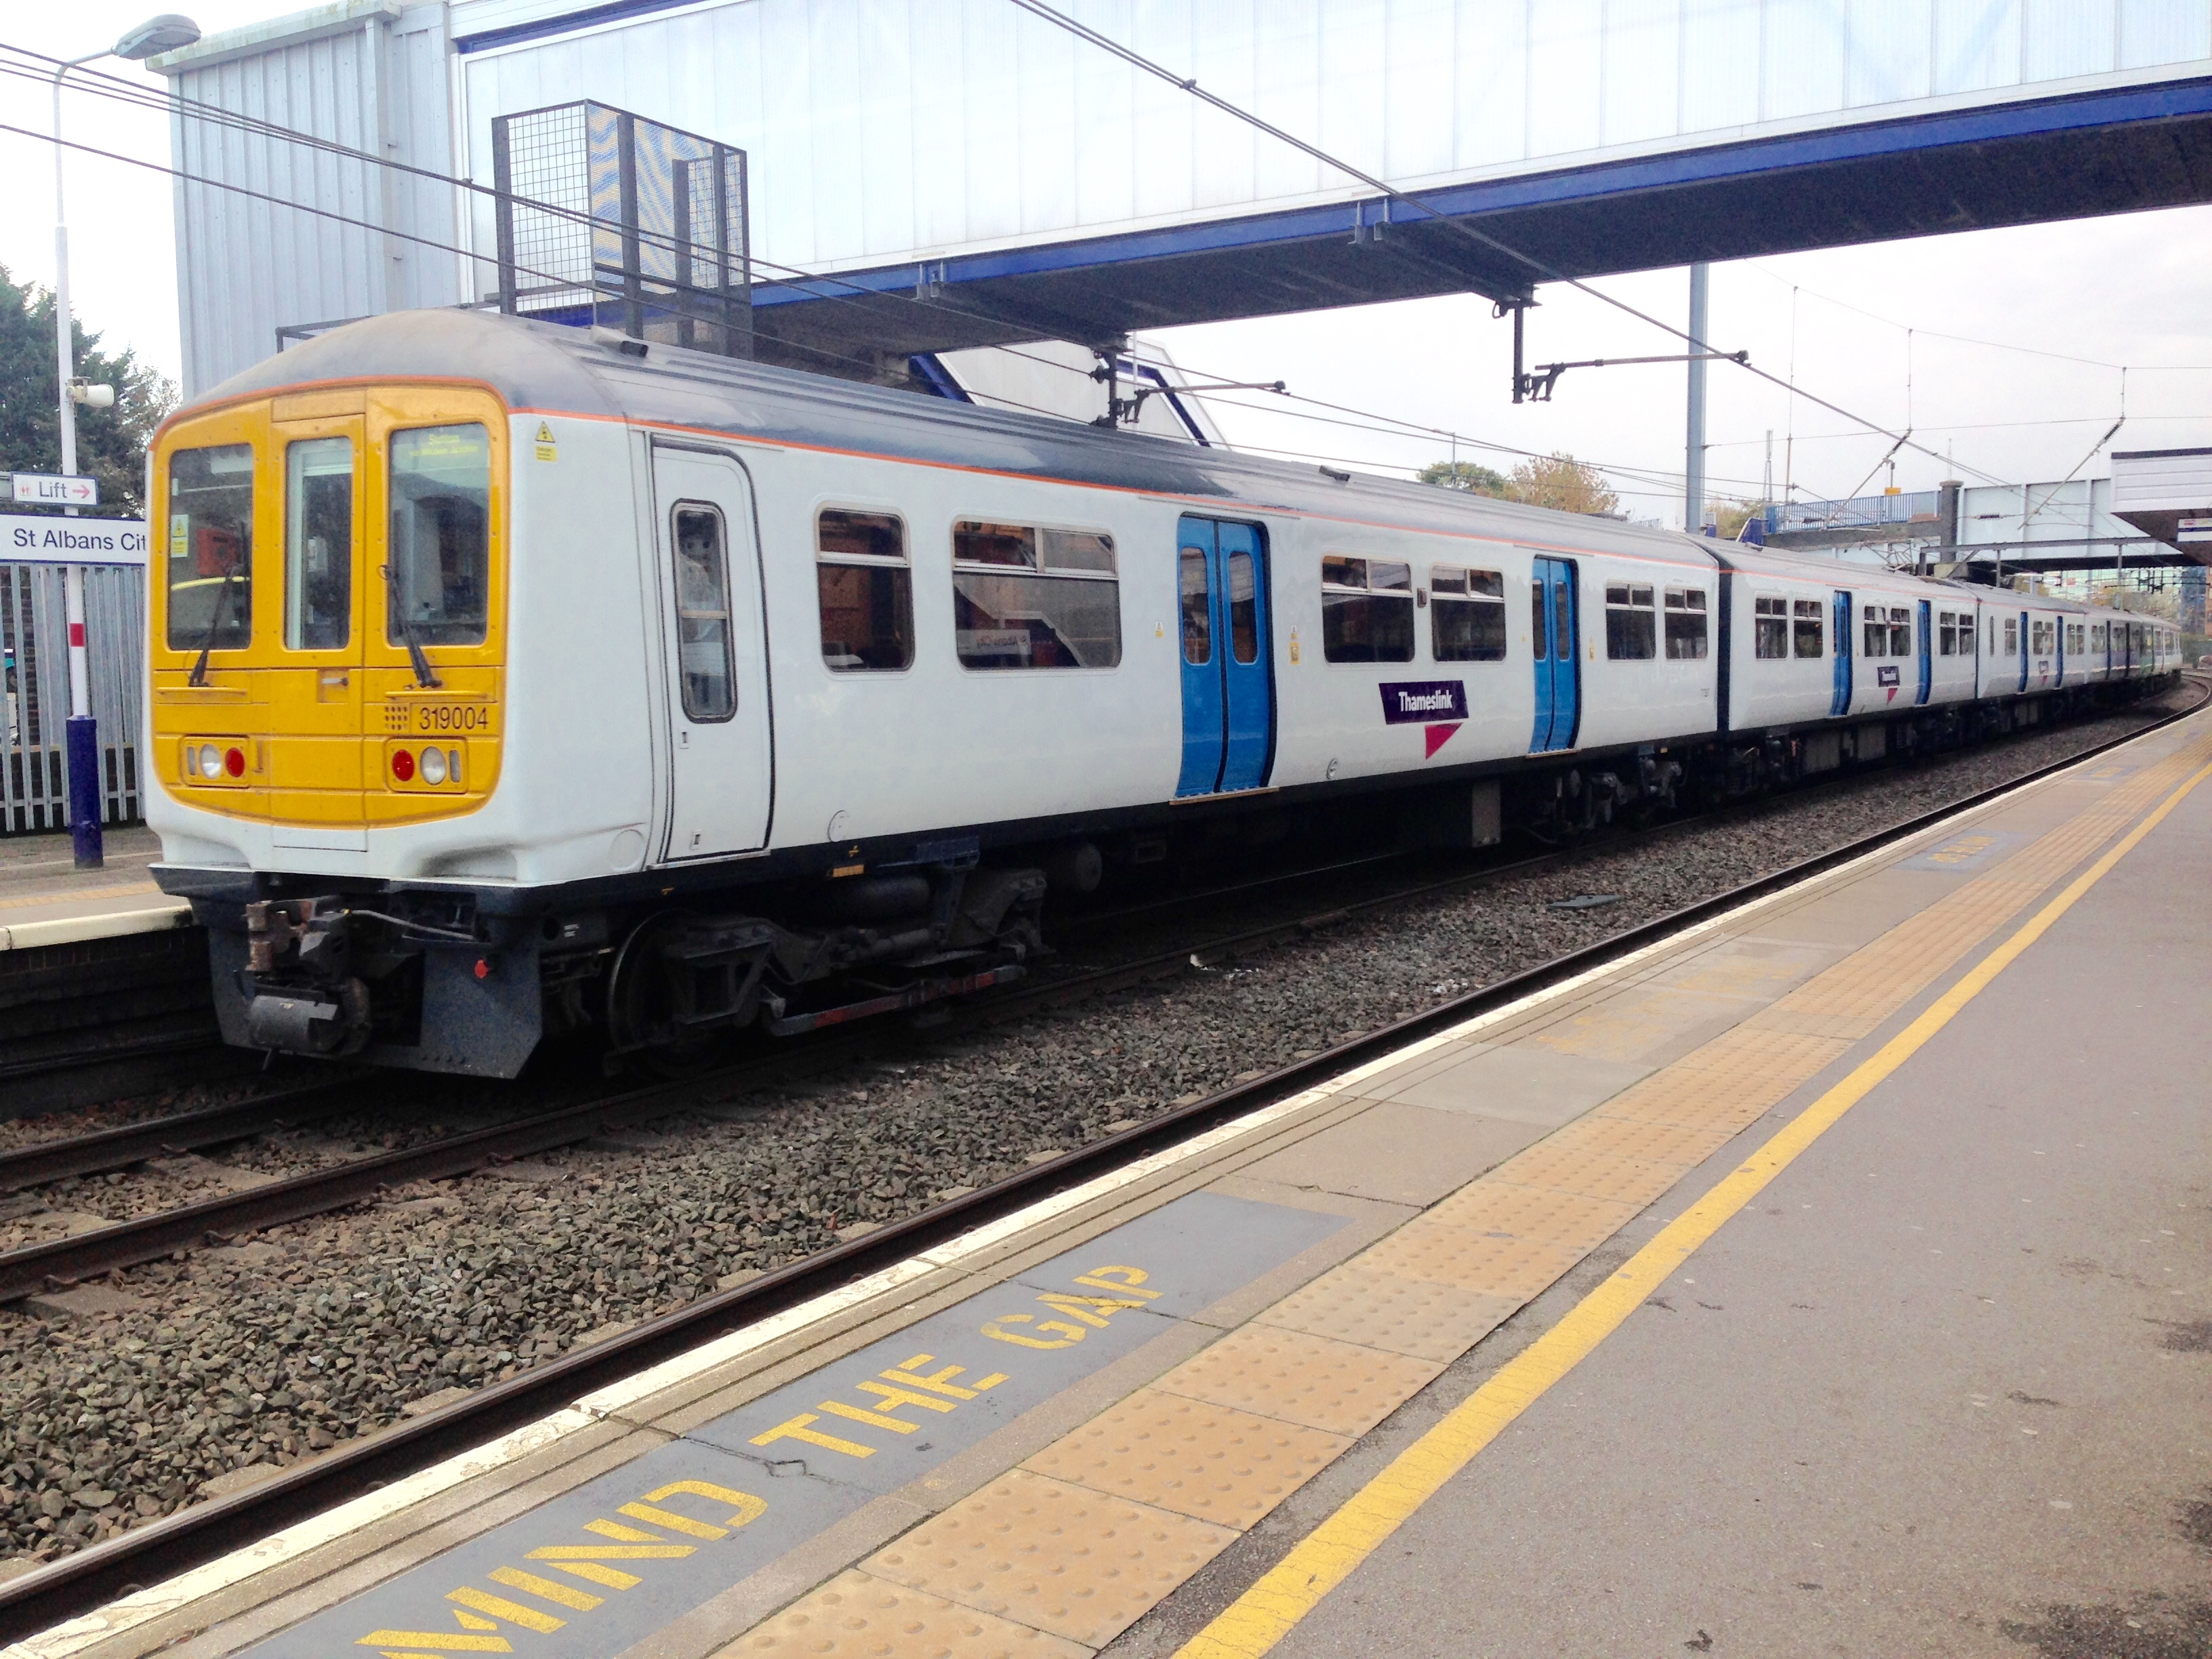 Thameslink - definition - What is